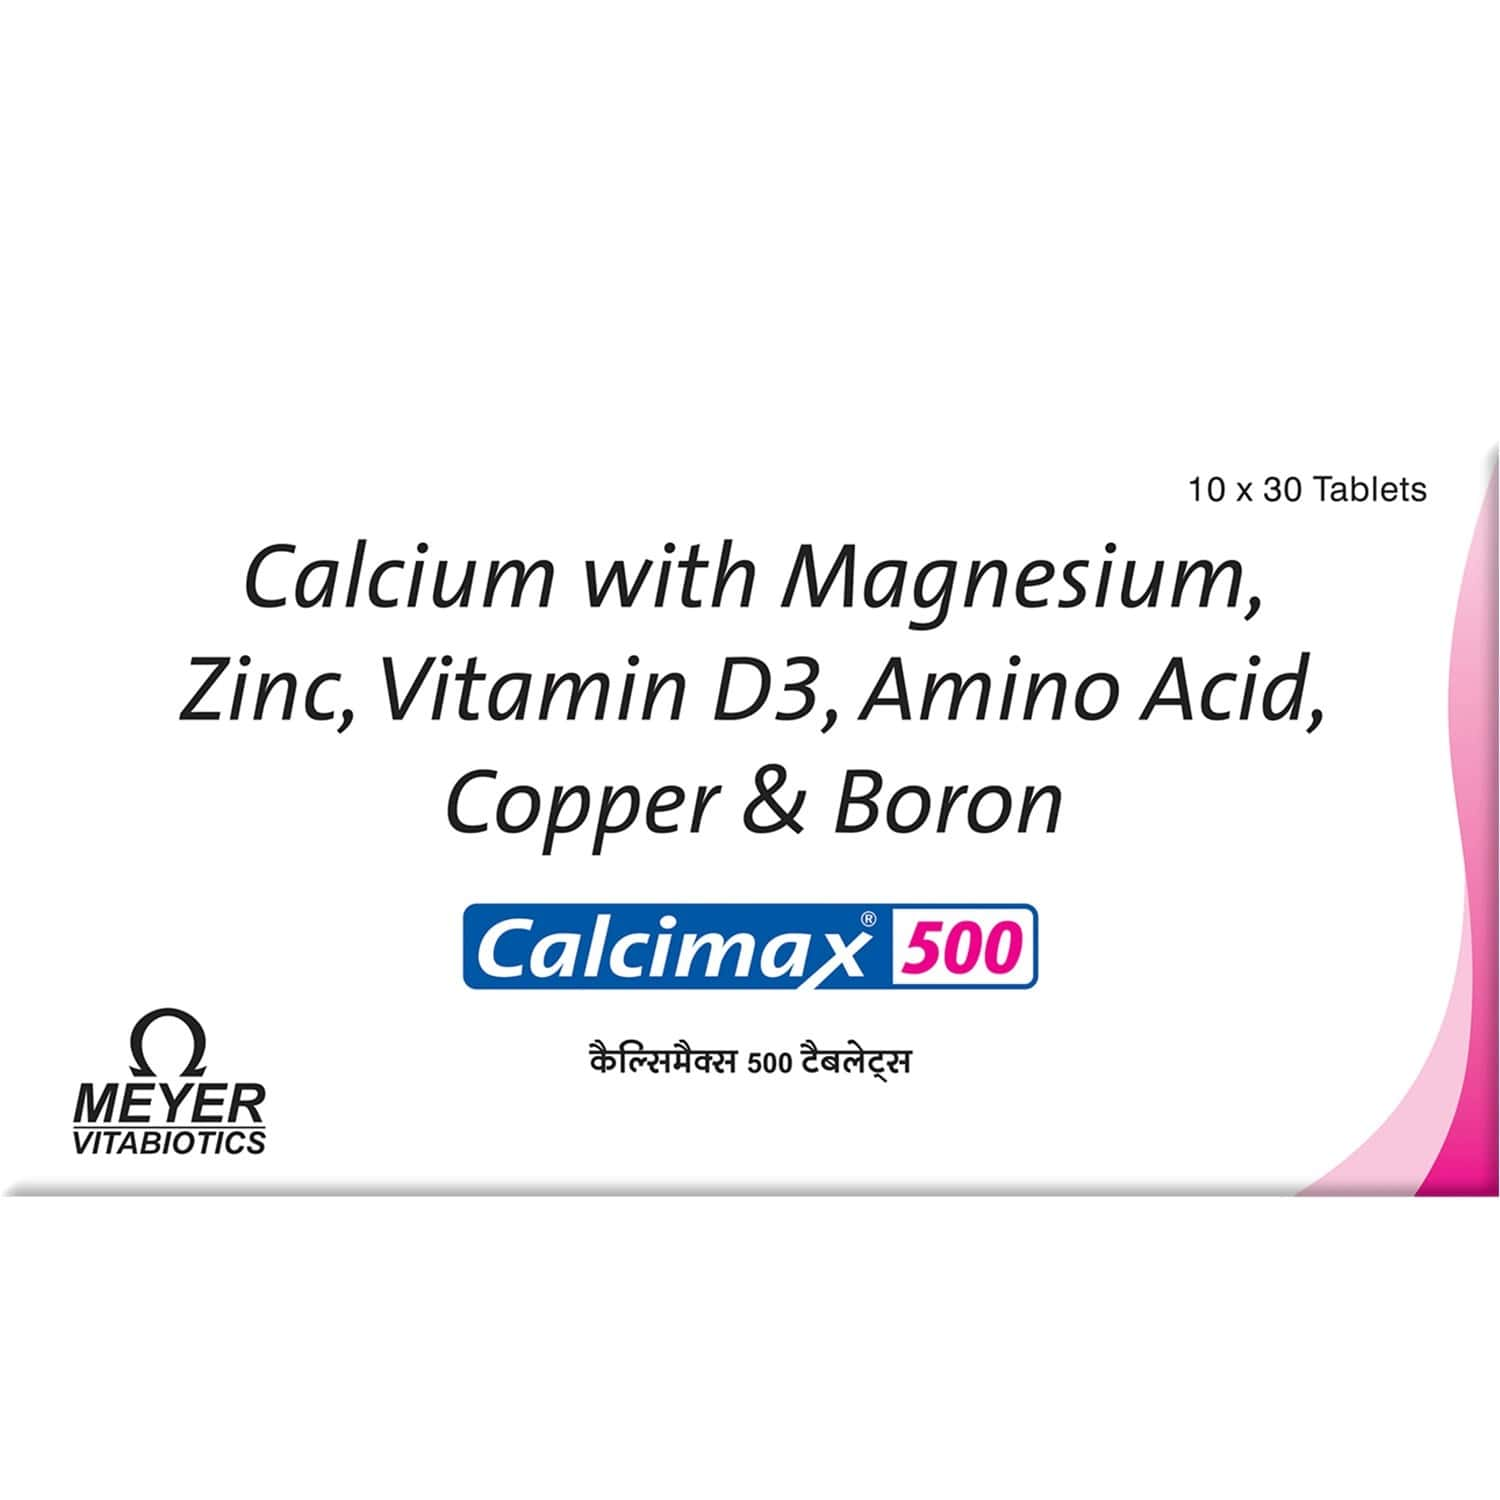 Calcimax 500 Health Supplement Tablets (500 Mg Of Calcium) Box Of 30